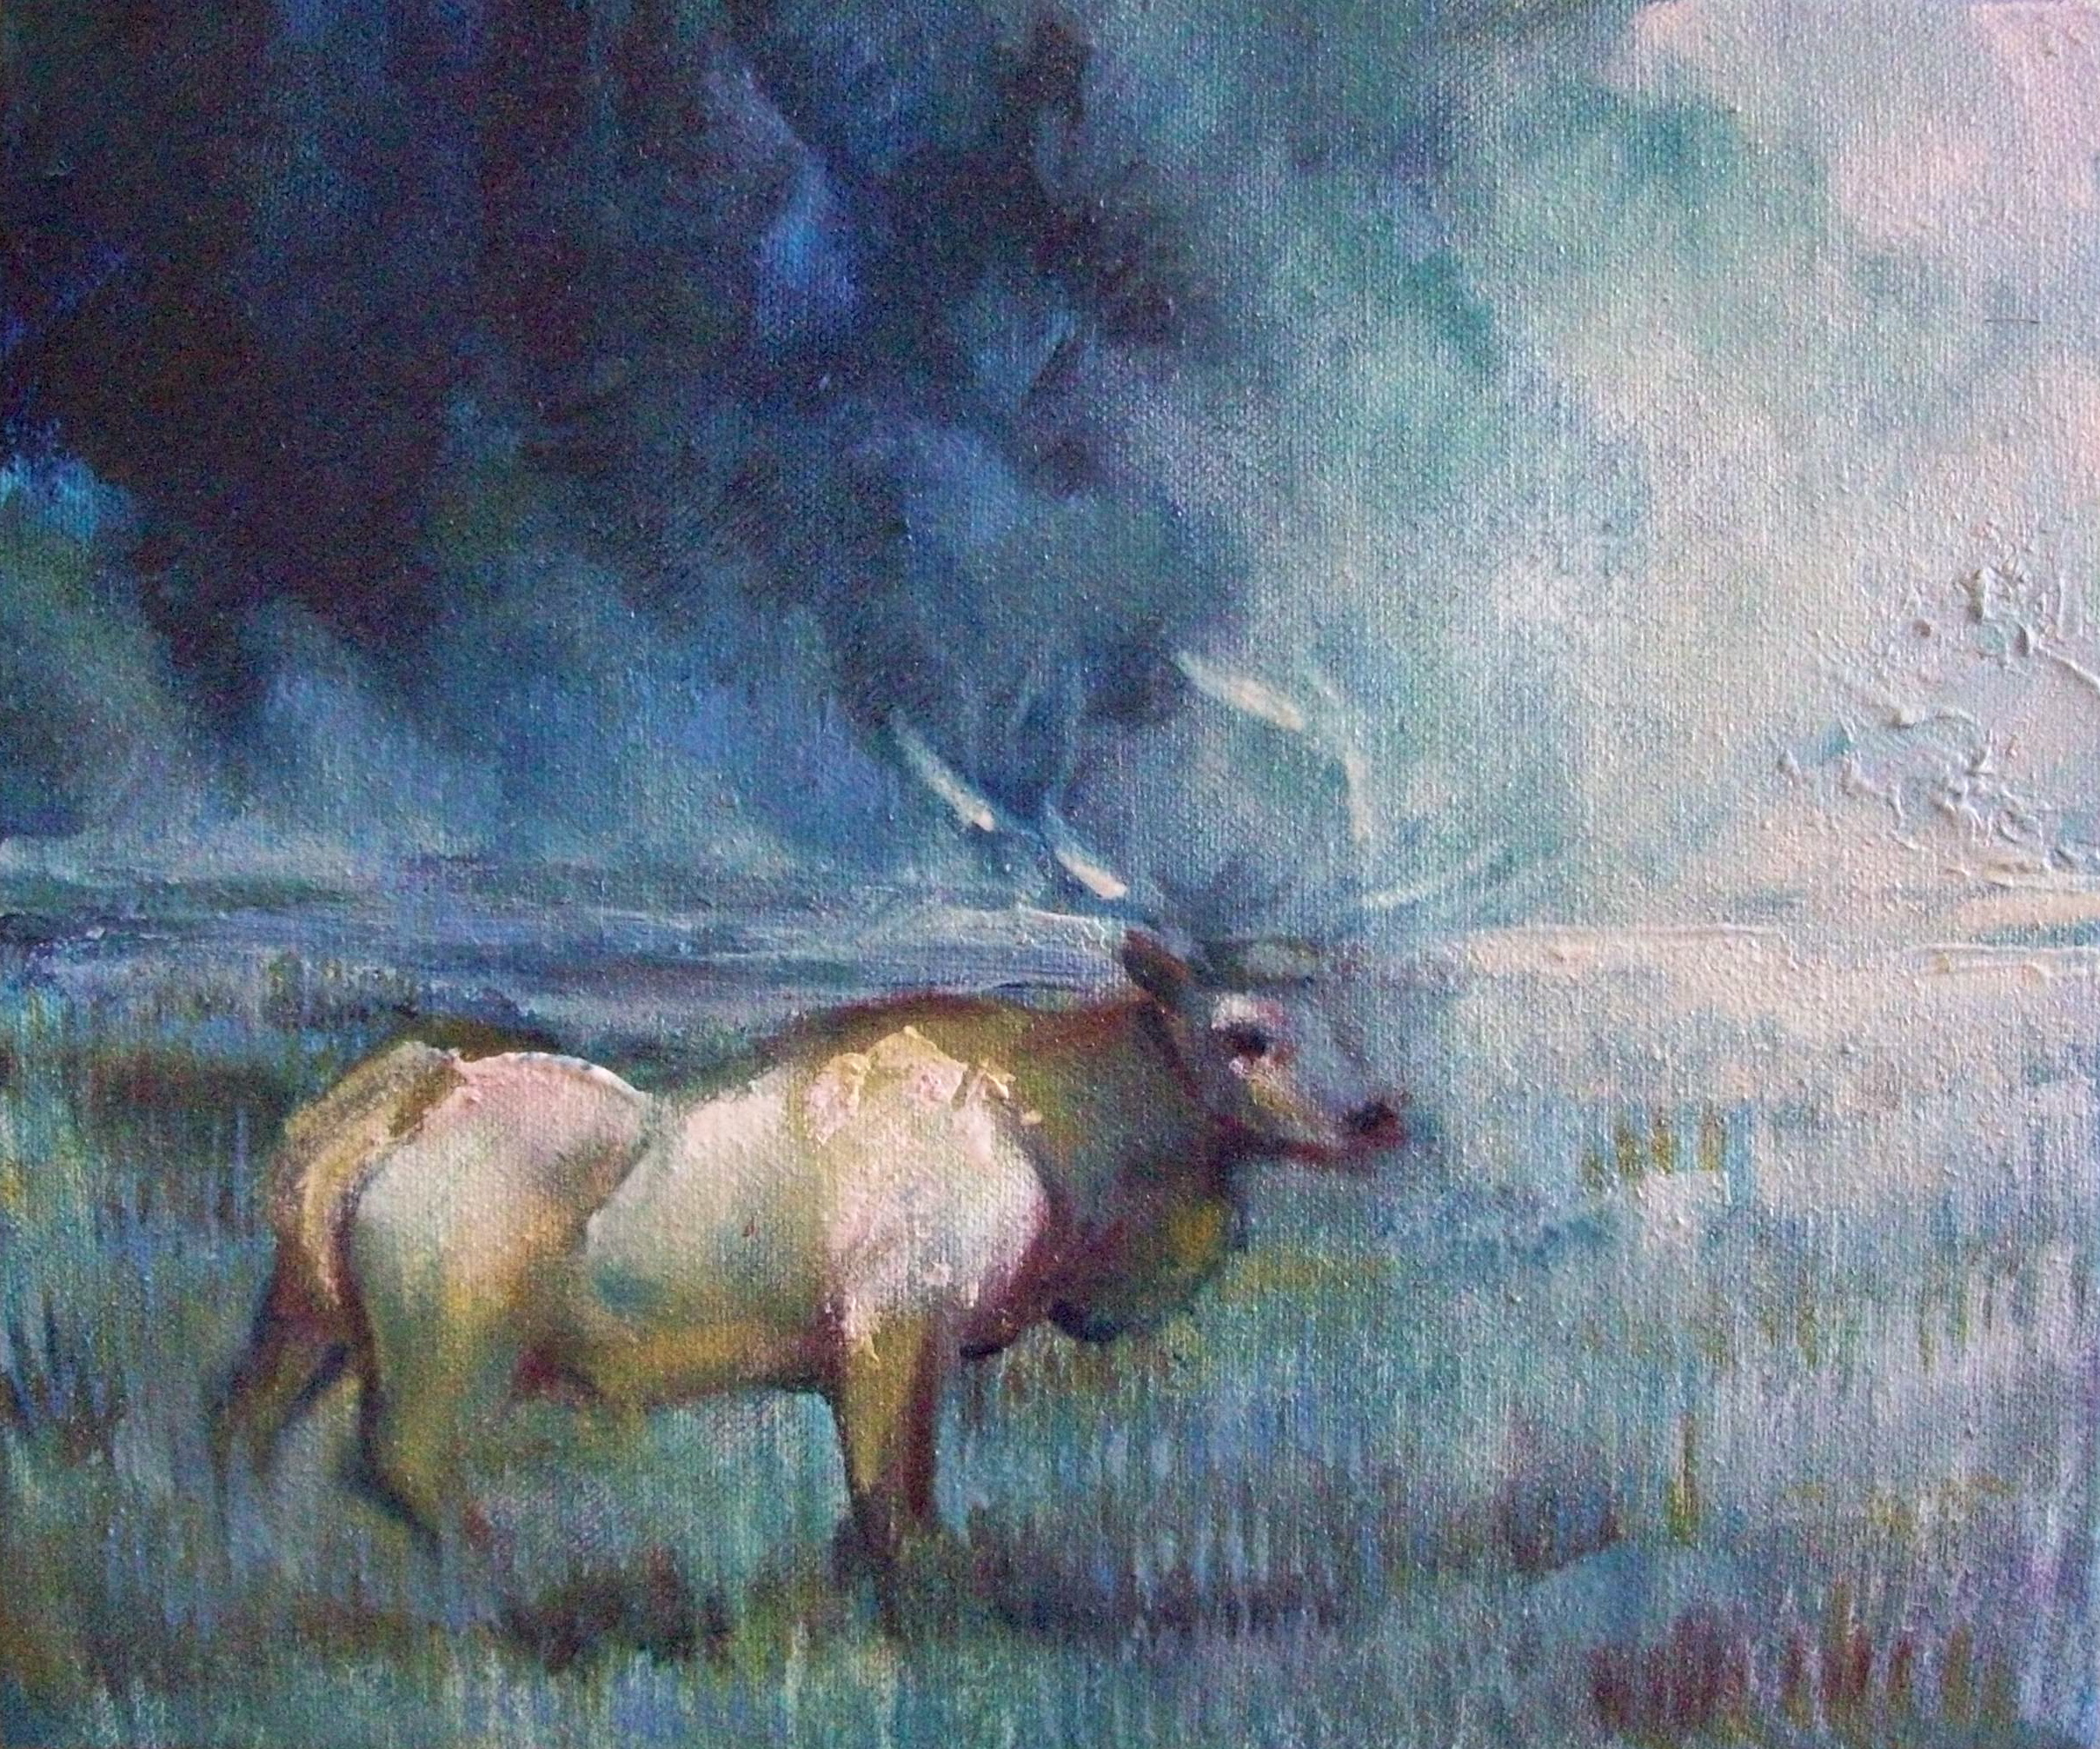 Twilight Stag